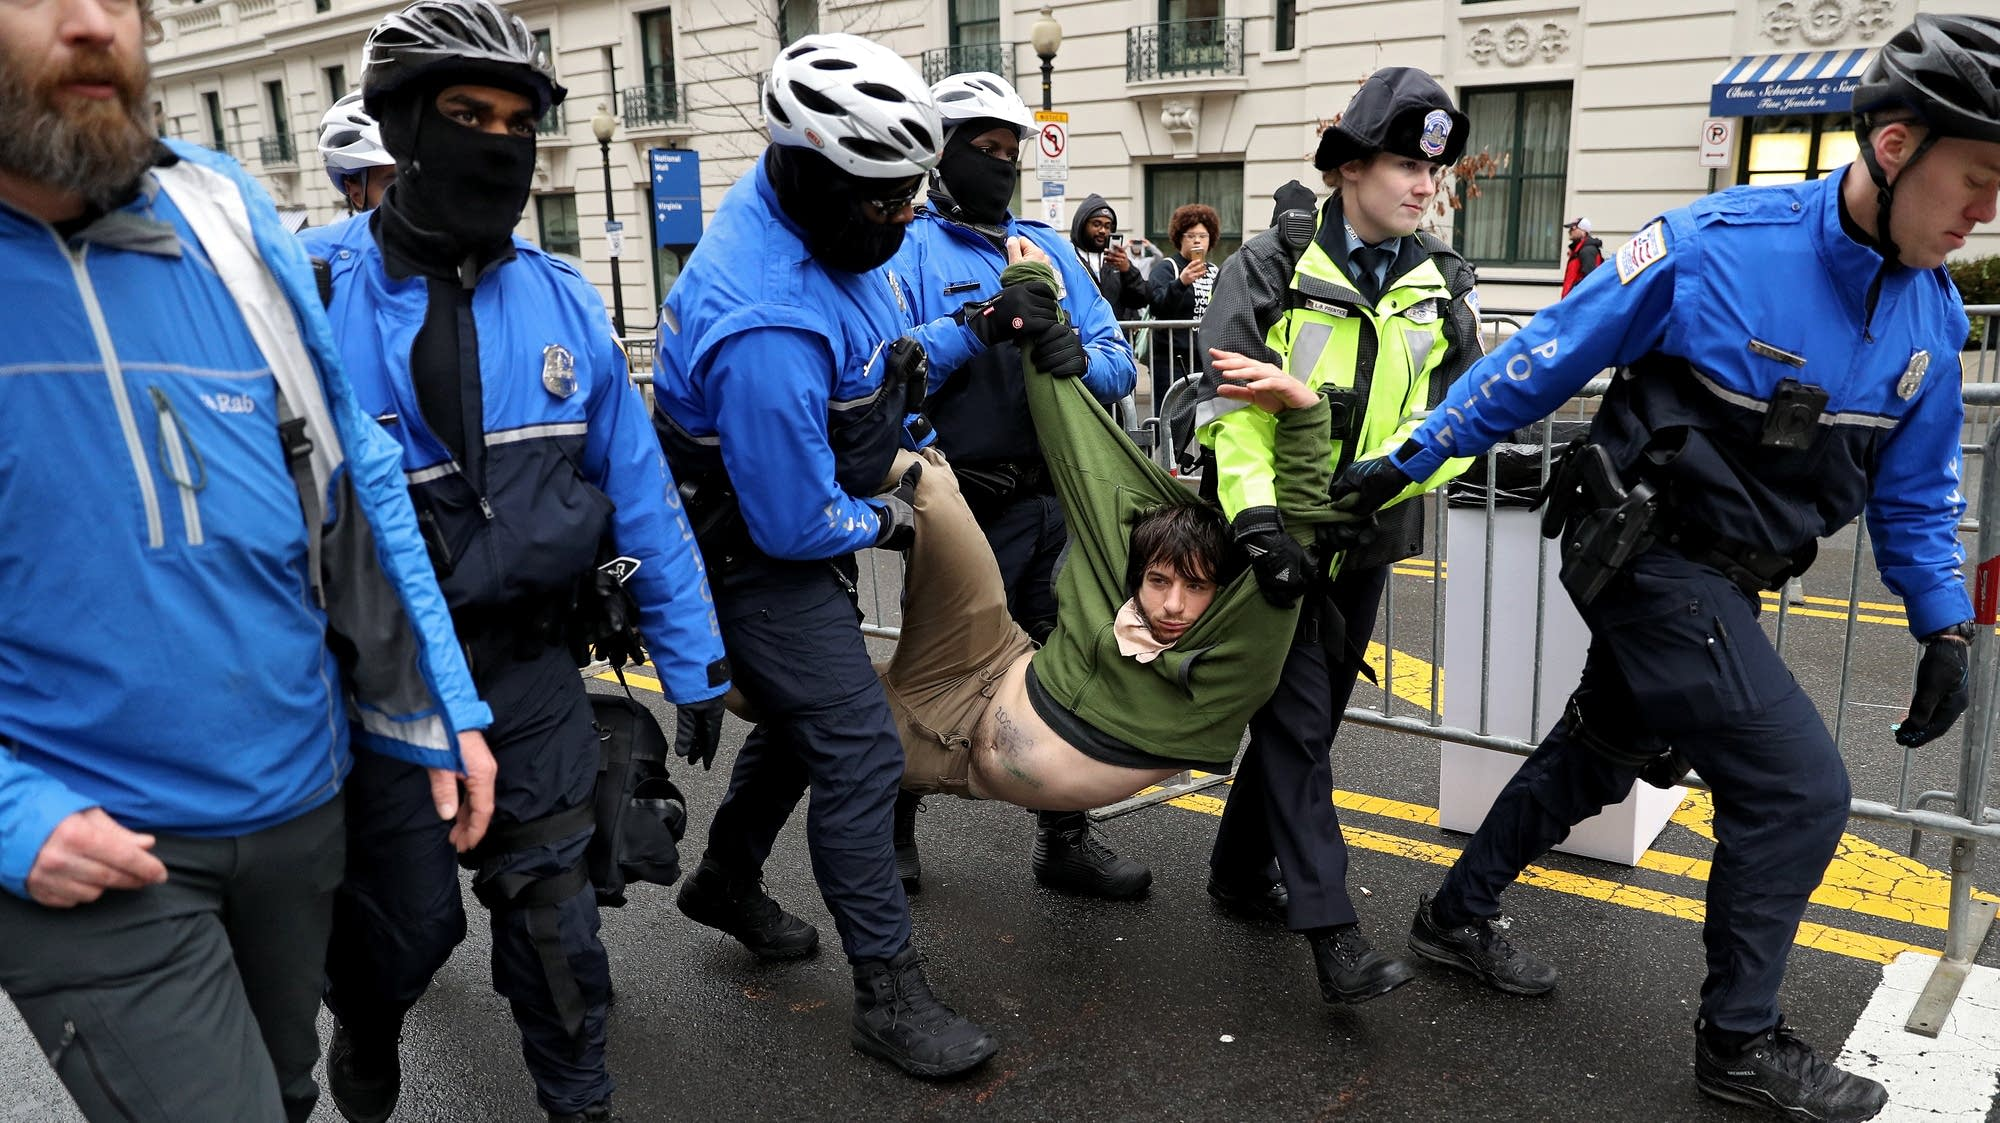 A protester is dragged away from a public access point.